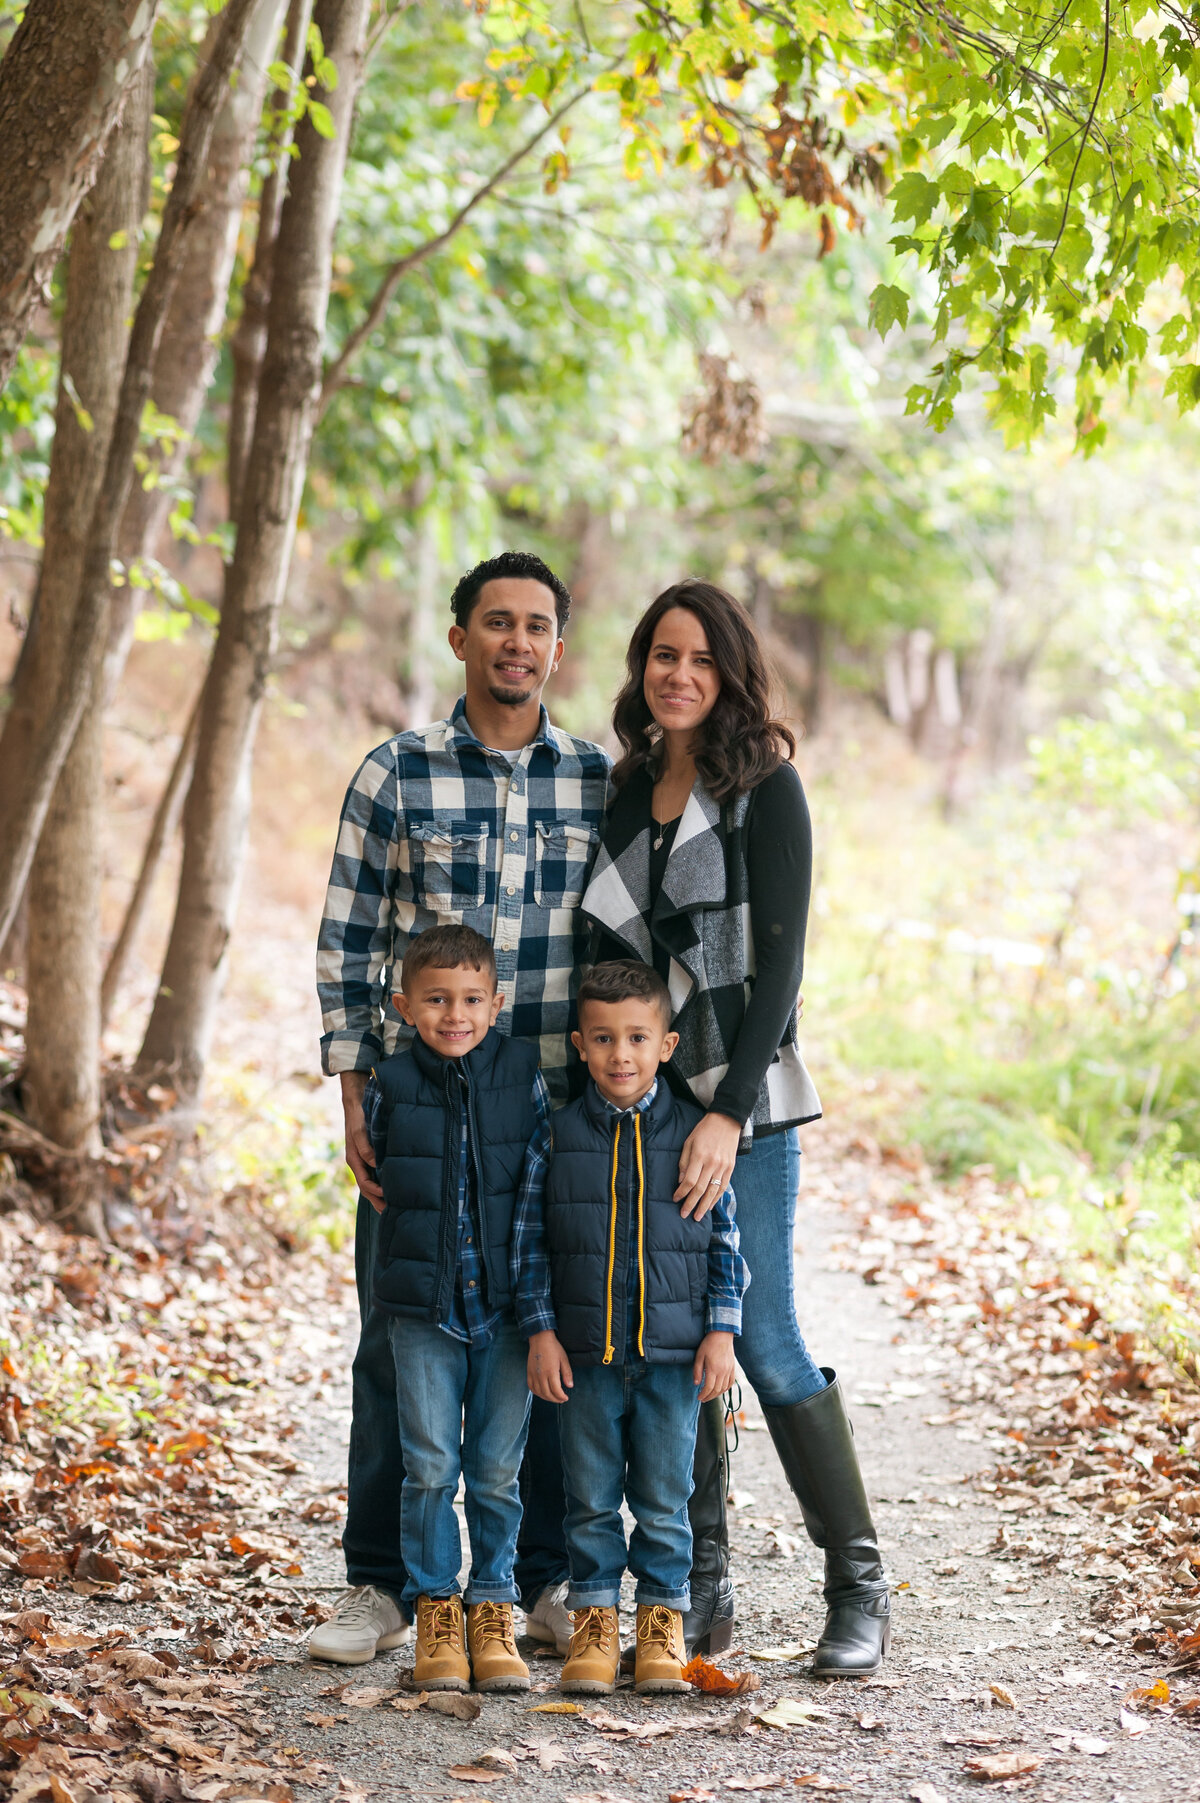 Wendy_Zook_Family_Photography_Lacayo_1